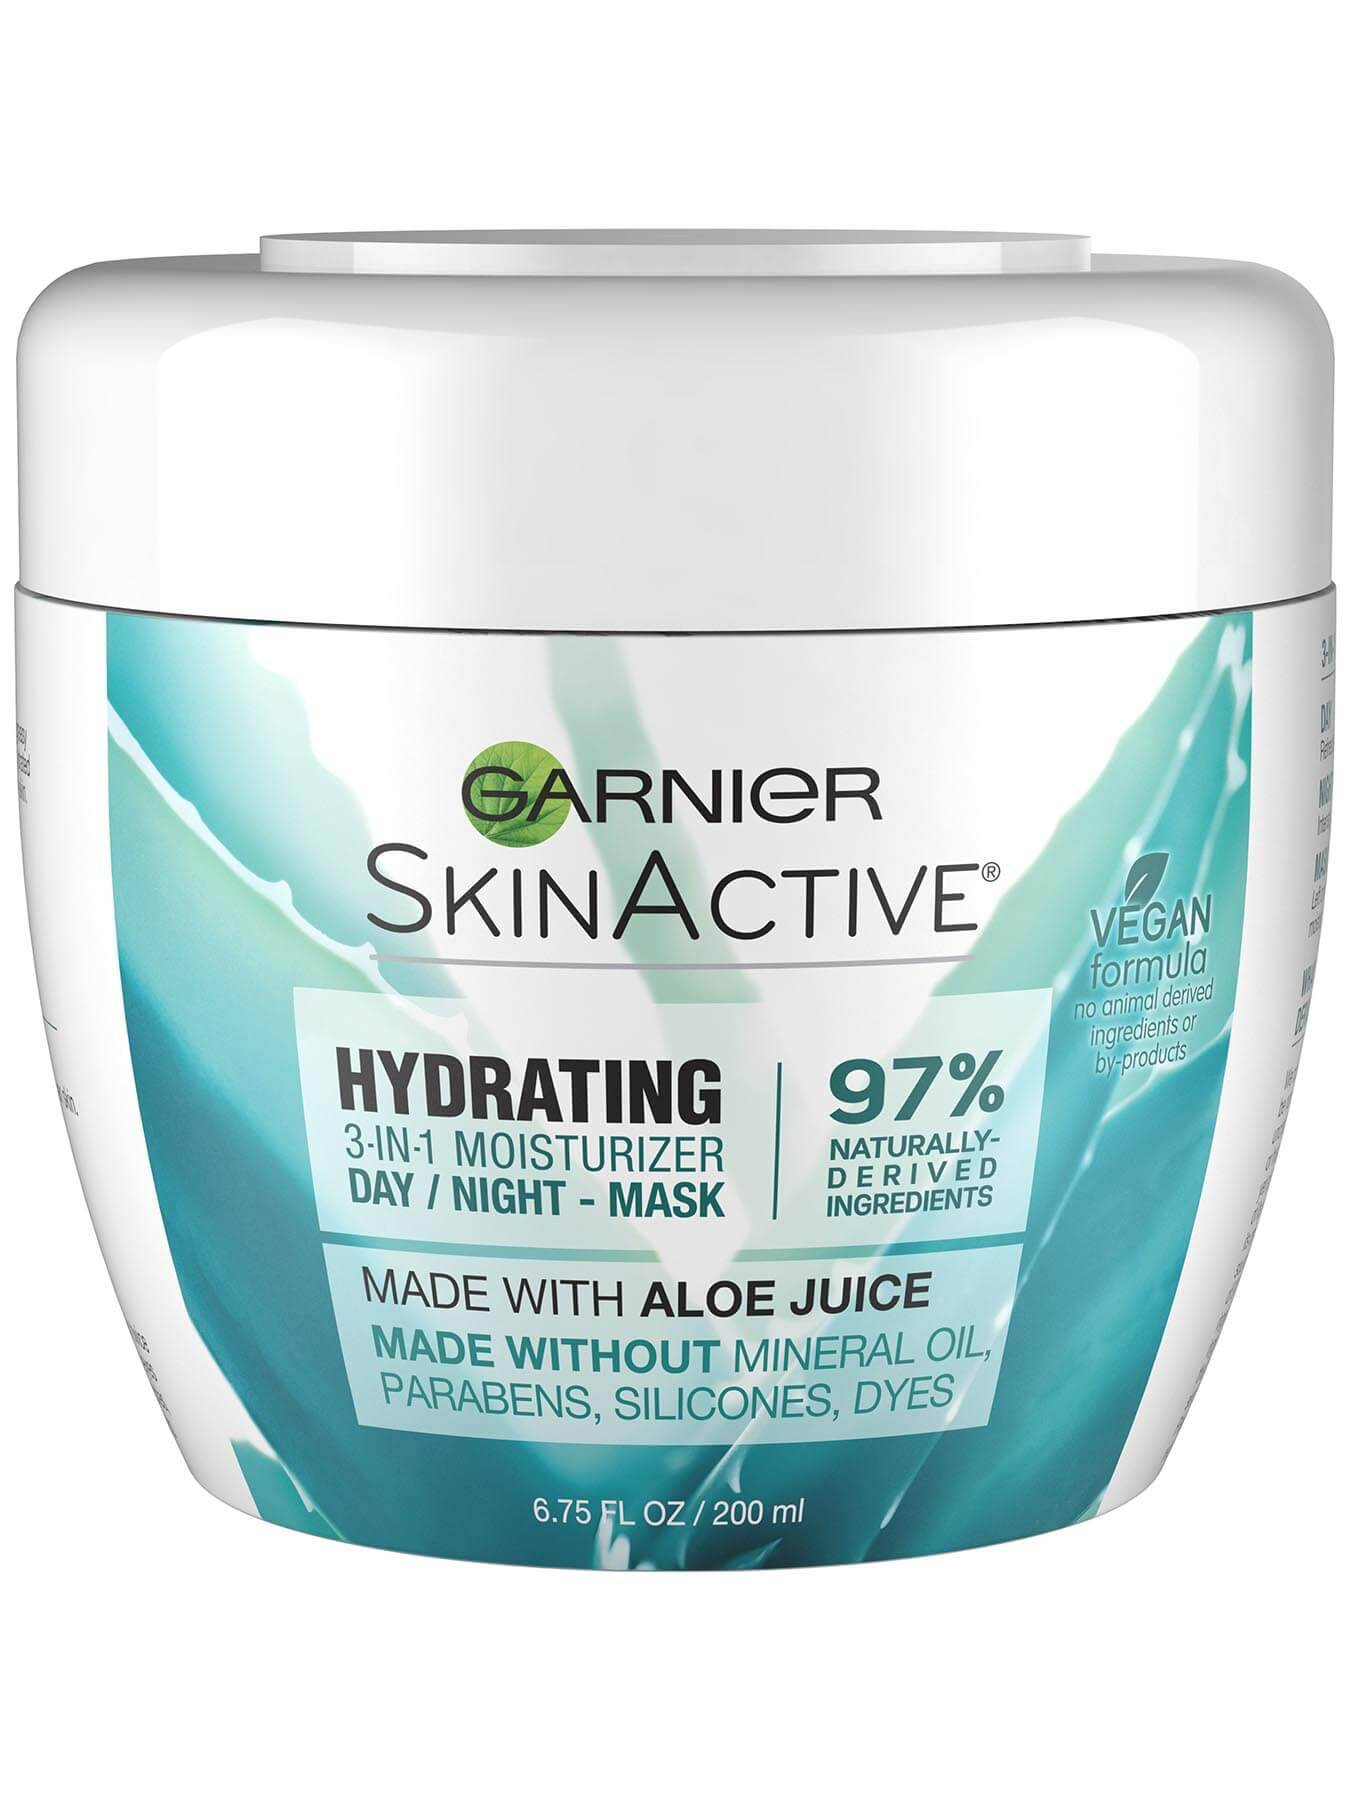 Garnier SkinActive Hydrating 3-in-1 Face Moisturizer with Aloe - 3-in-1 Face Moisturizer- Day, Night, Mask